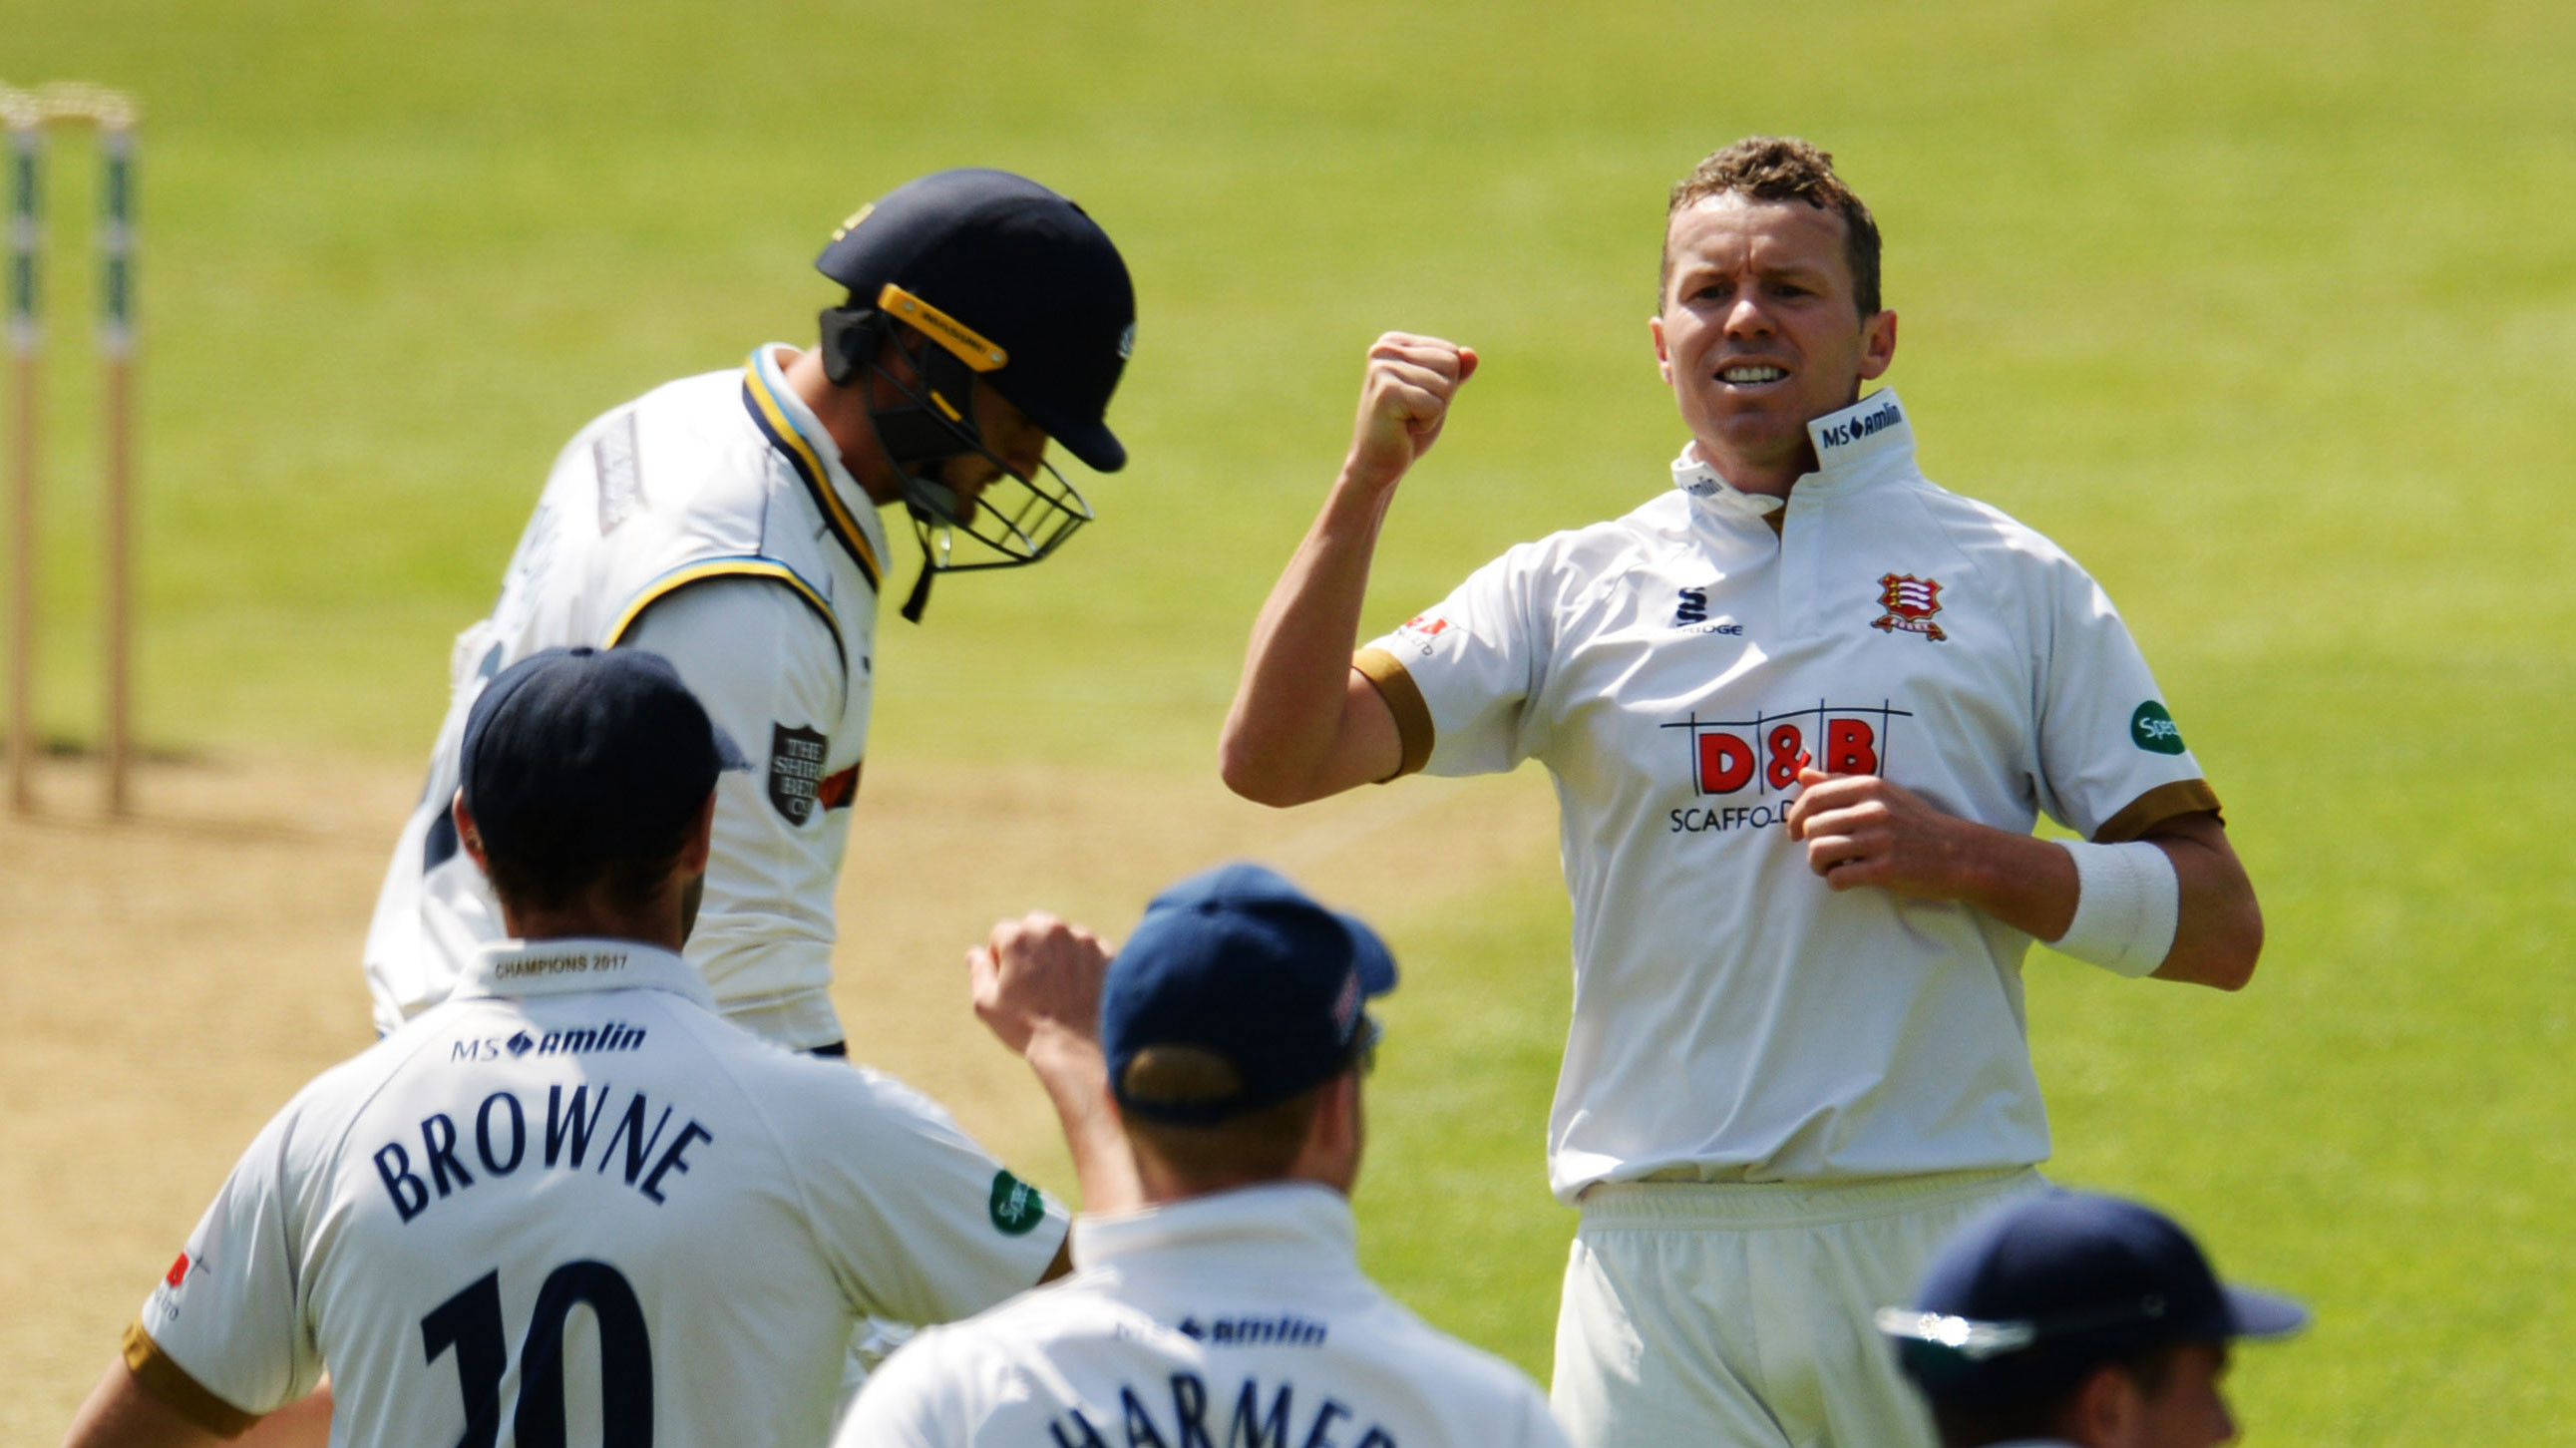 Australia's Peter Siddle signs fresh contract with Essex